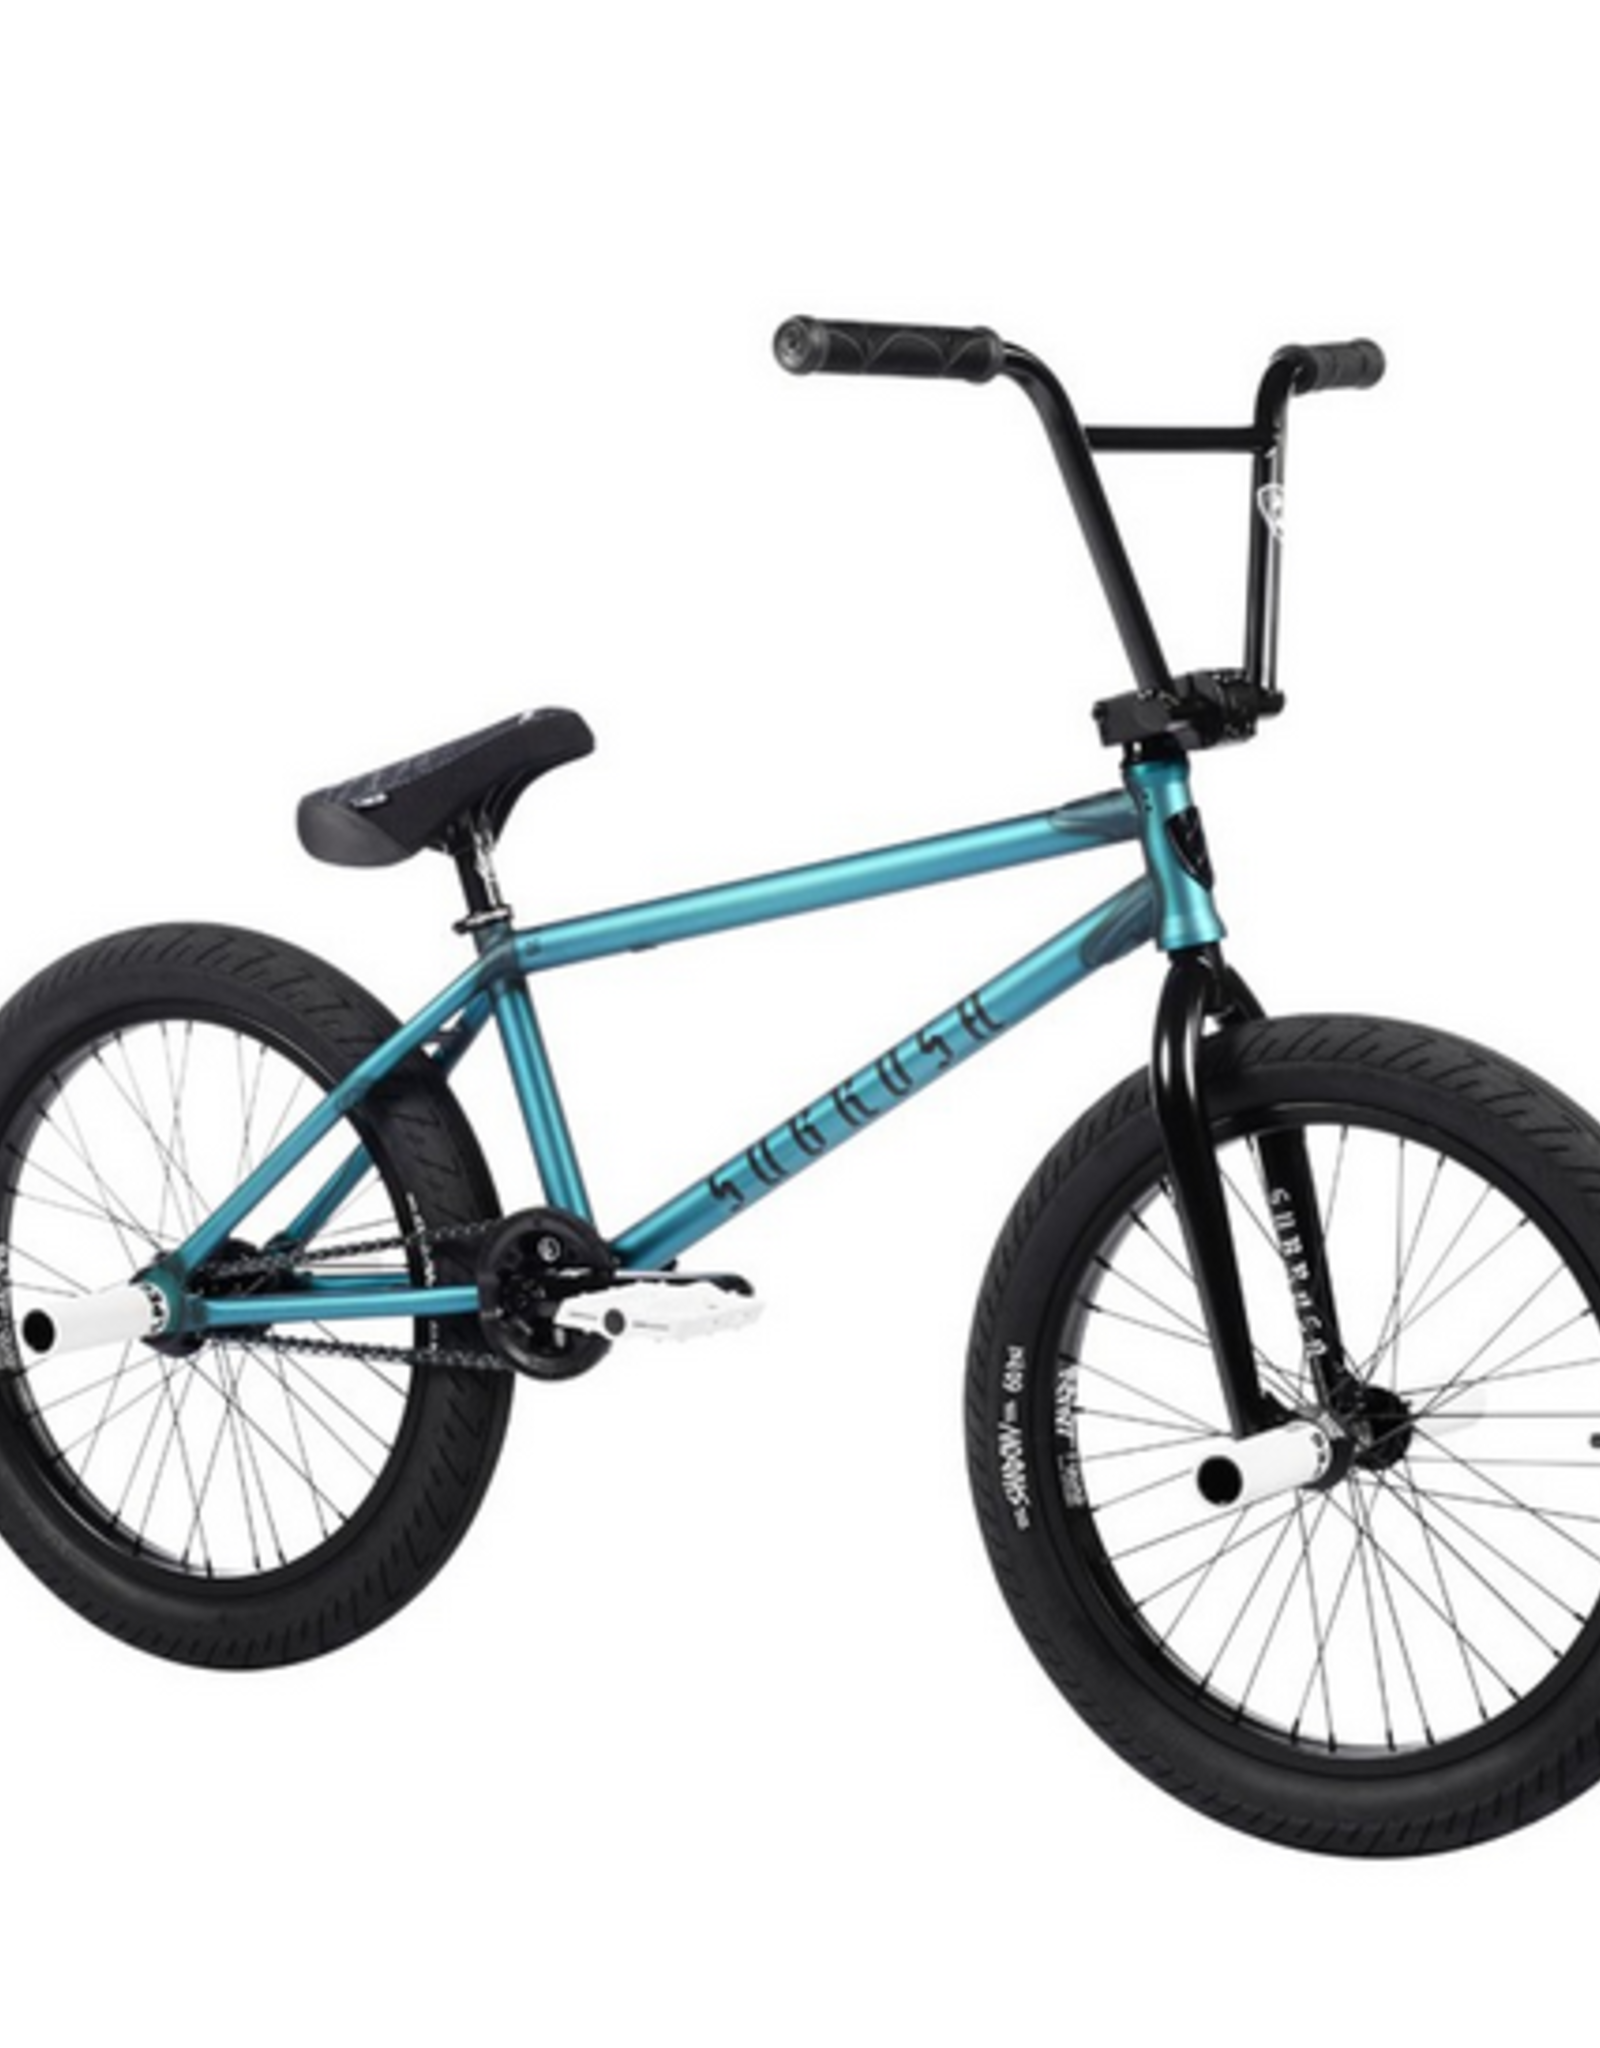 """SUBROSA Copy of 2021 SUBROSA 20.75""""TT LETUM COMPLETE 20"""" BIKE TRANS TEAL"""